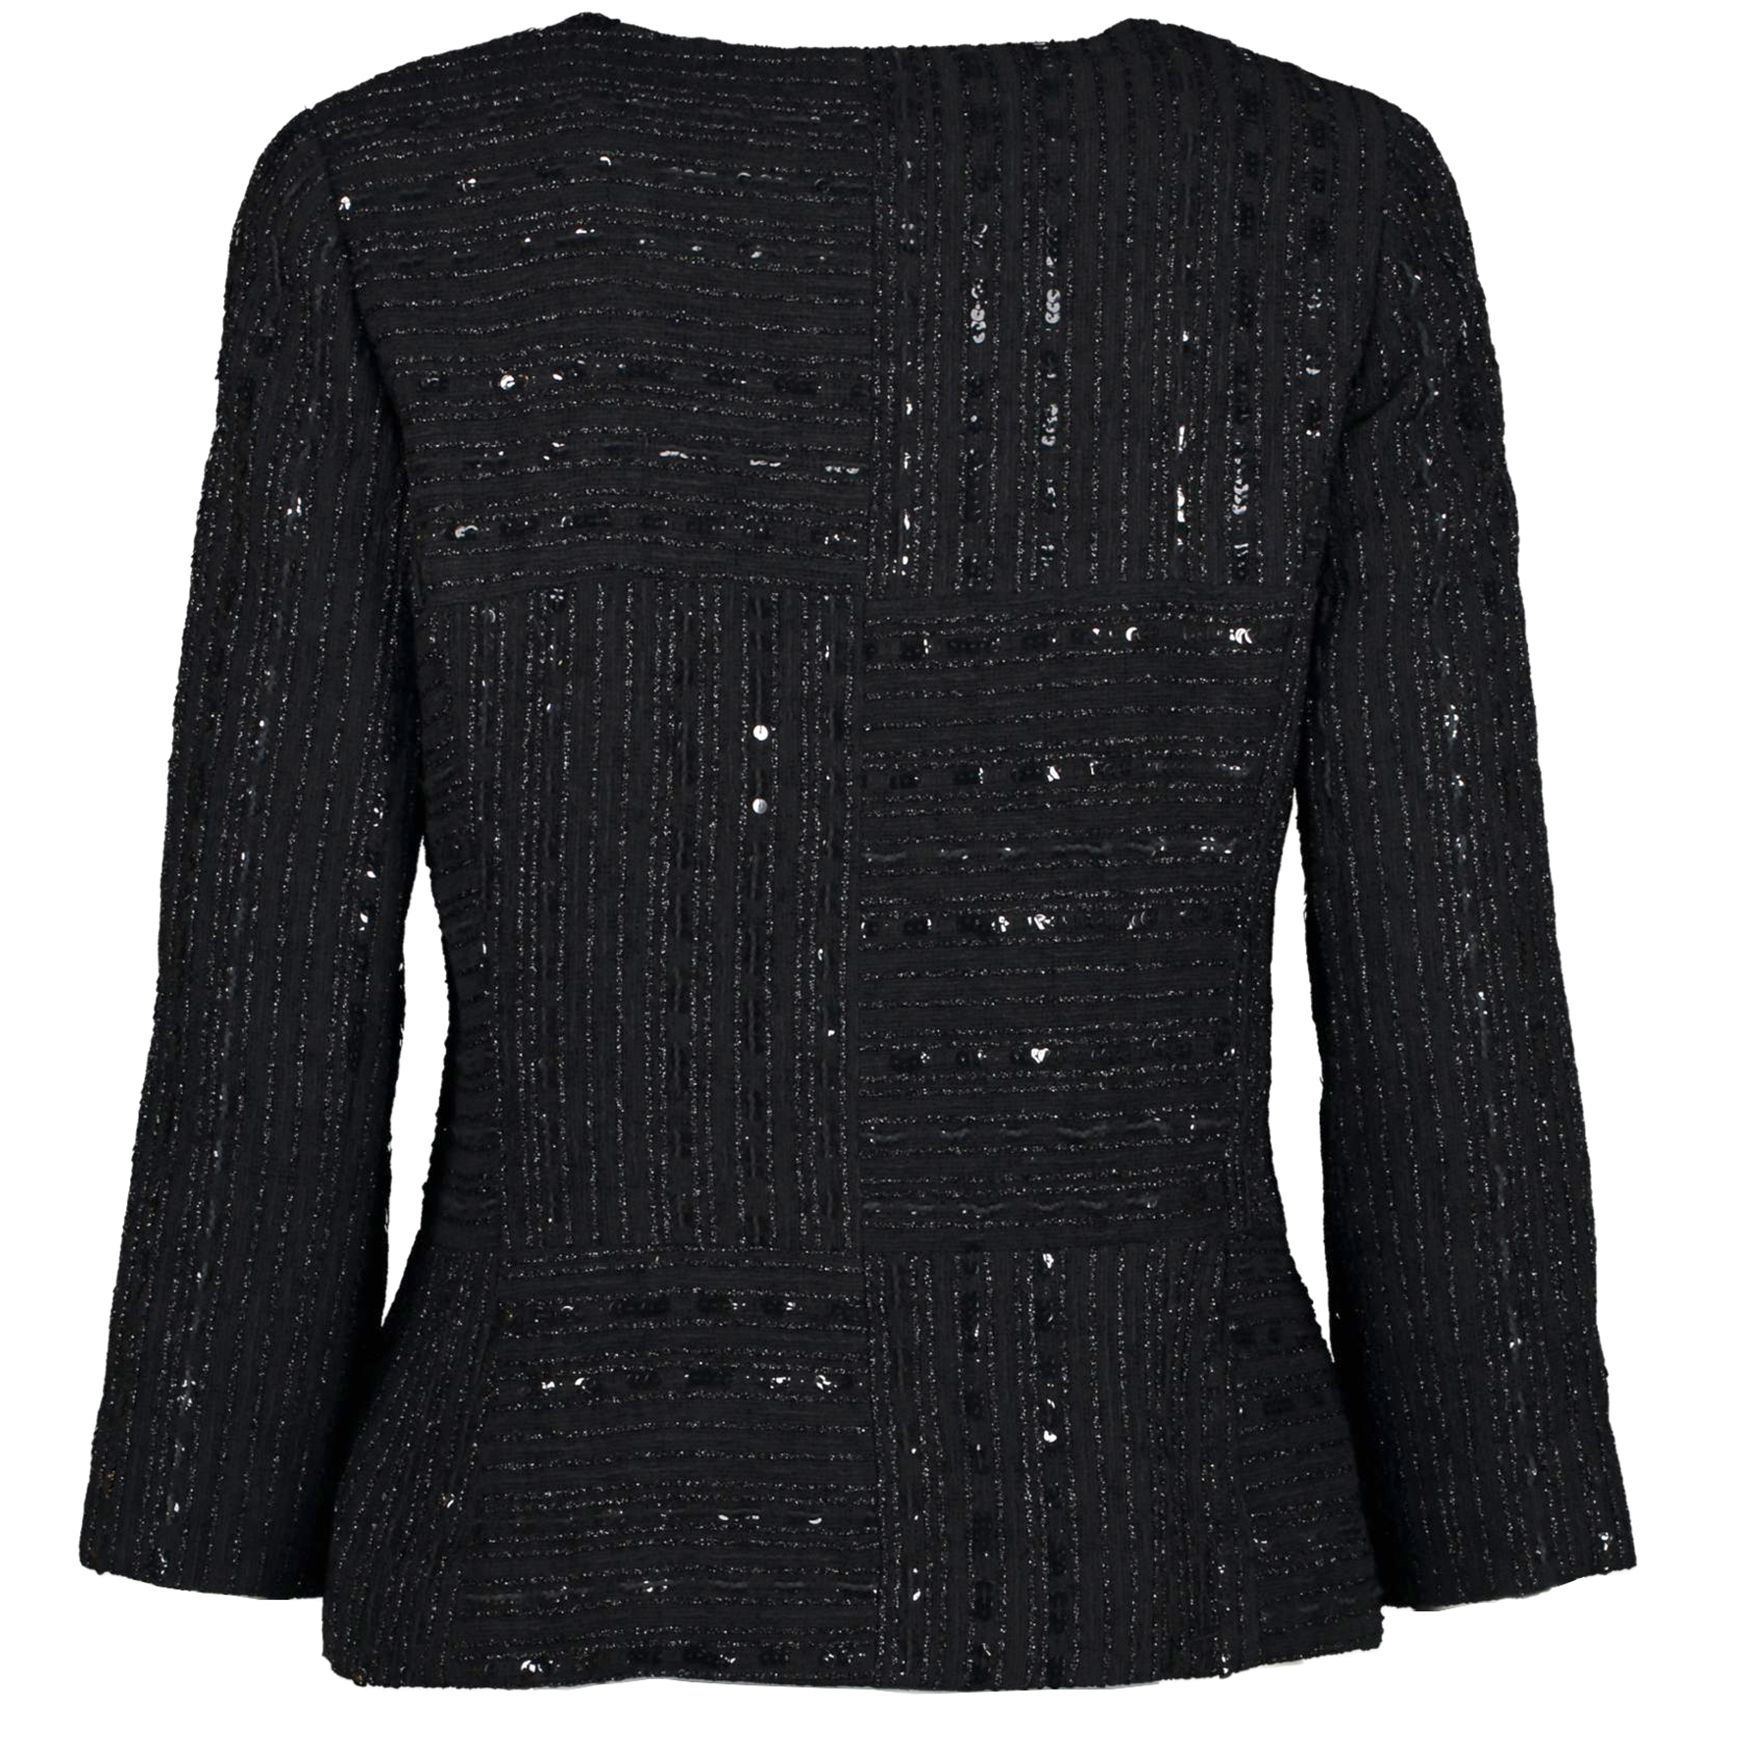 We buy and sell your authentic designer Chanel Black Sequin and Nylon Jacket for the best price